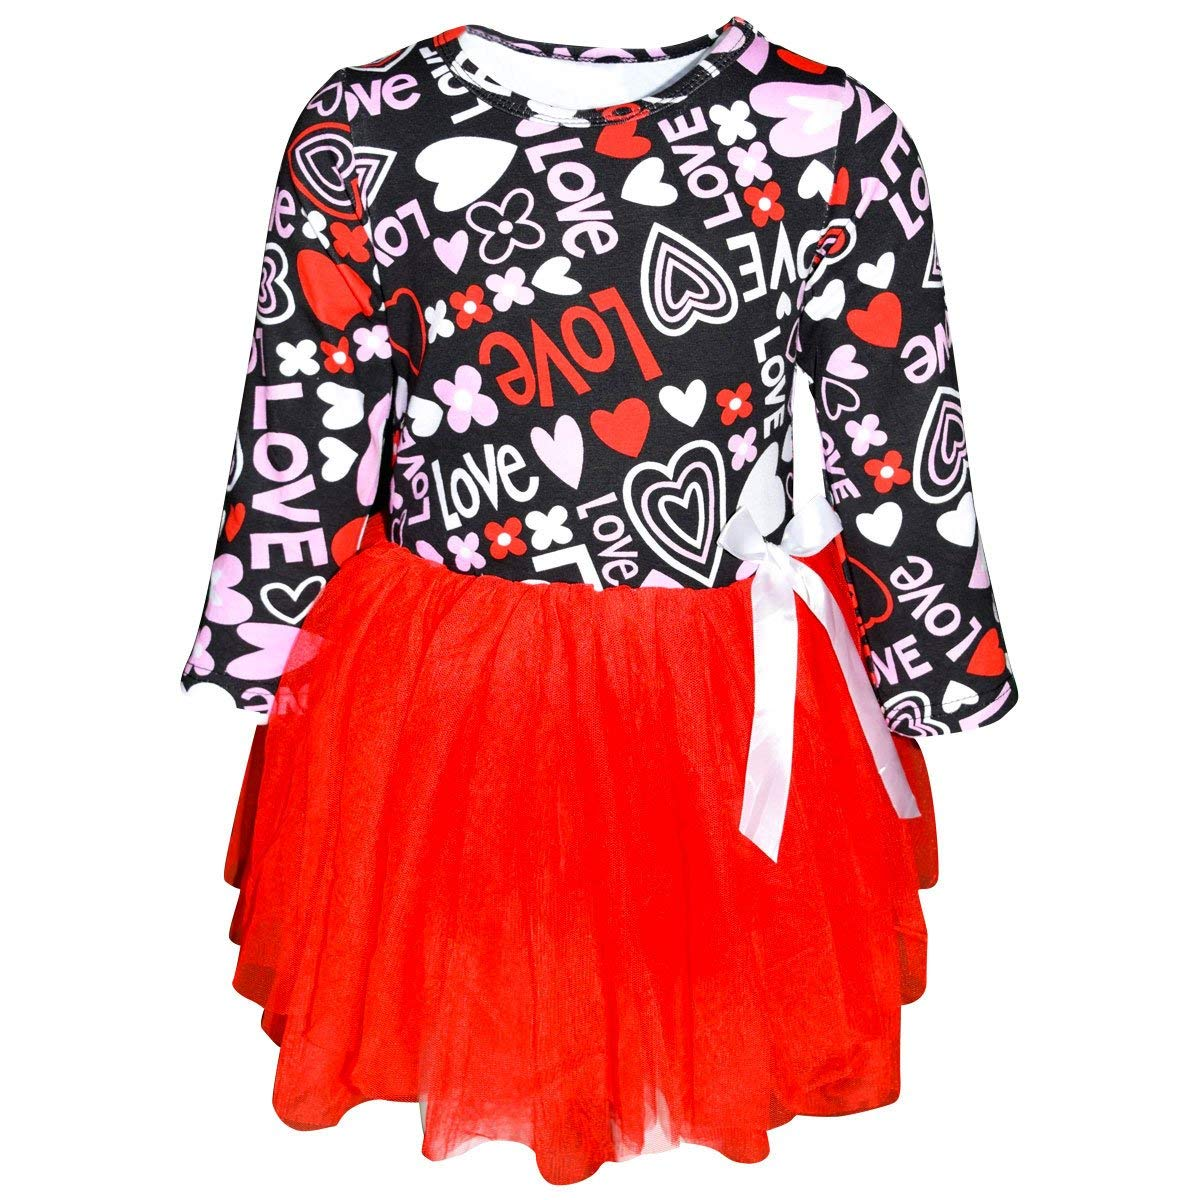 dfee4bc2bc7a Get Quotations · Unique Baby Girls Valentine s Day Love Heart Dress Tutu